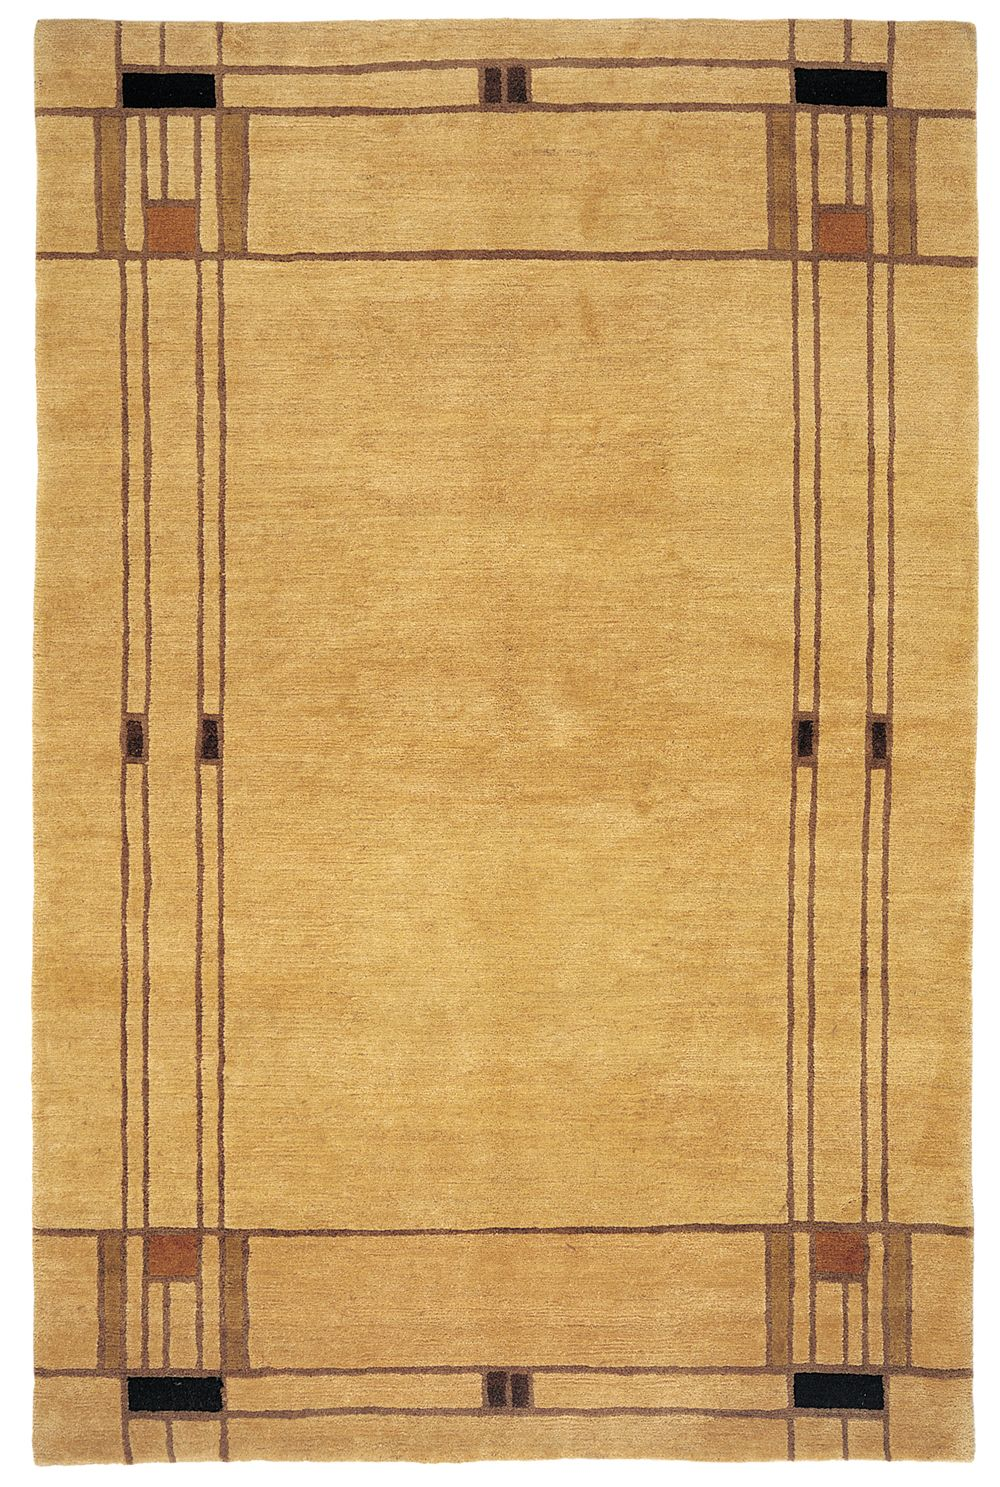 Tufenkian Setana Mission Cornsilk Area Rug  at Rug Studio wool